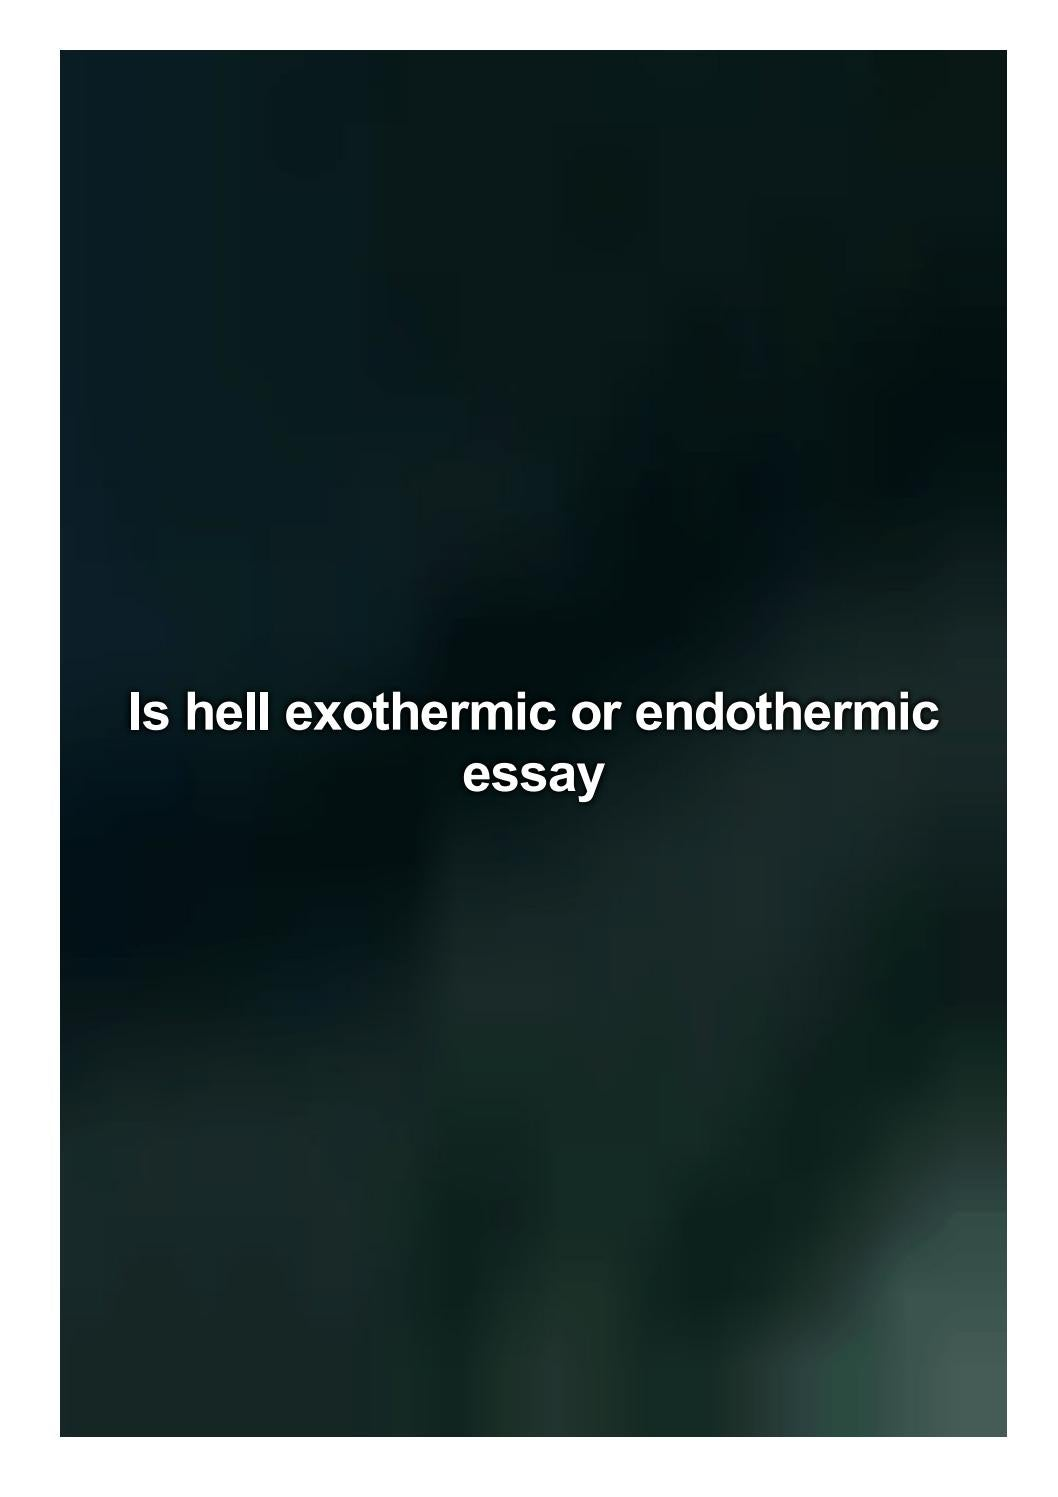 hell exothermic or endothermic essay